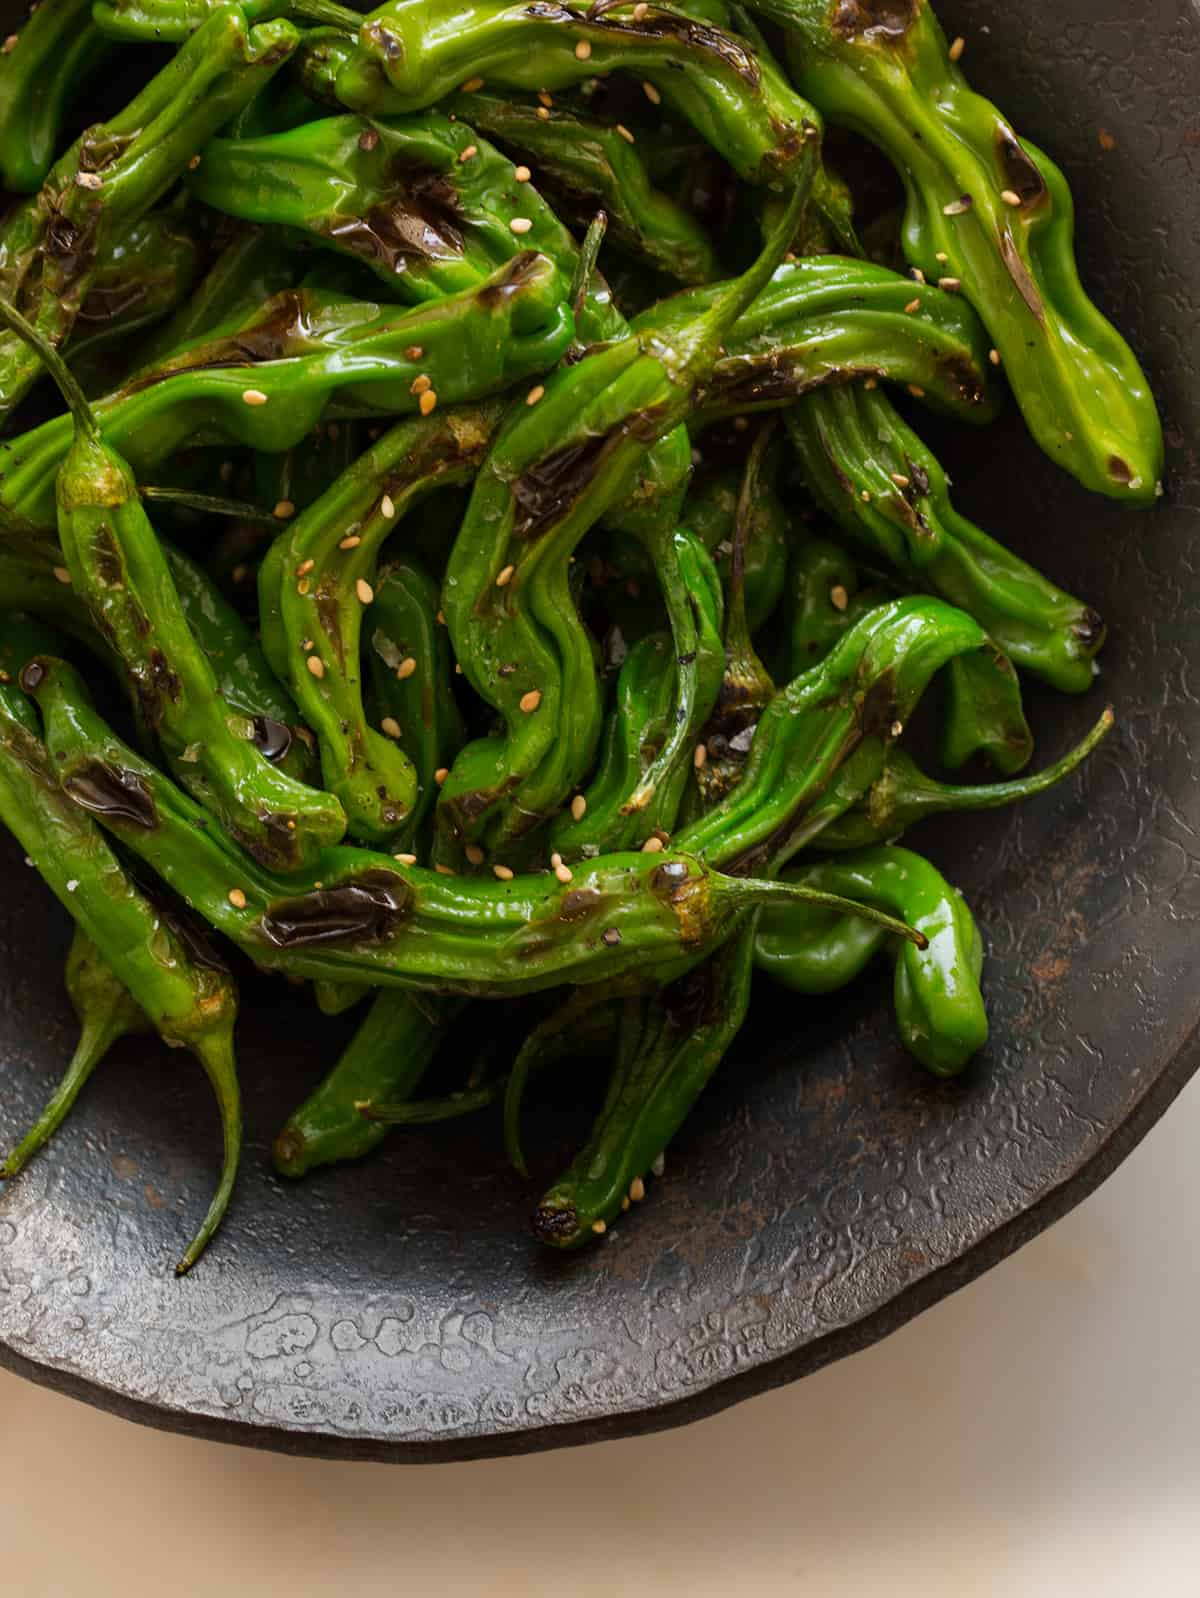 A recipe for Blistered Shishito Peppers.